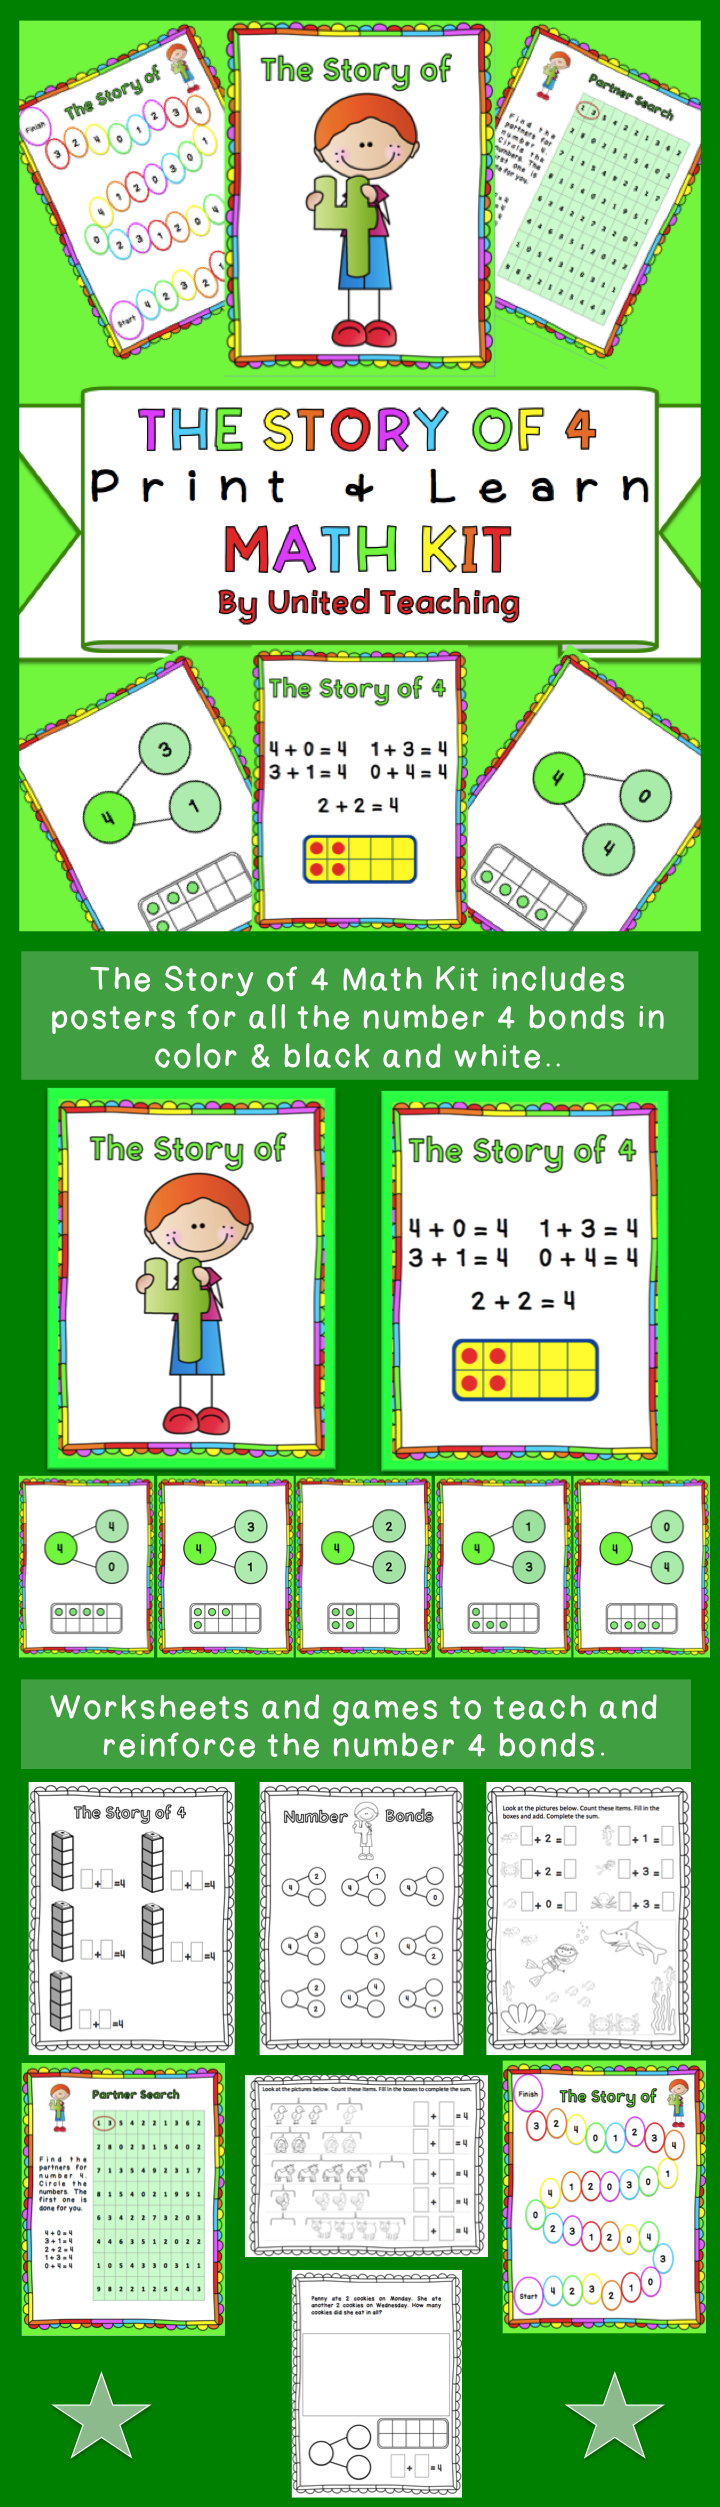 The Story of 4 Print + Learn Math Kit